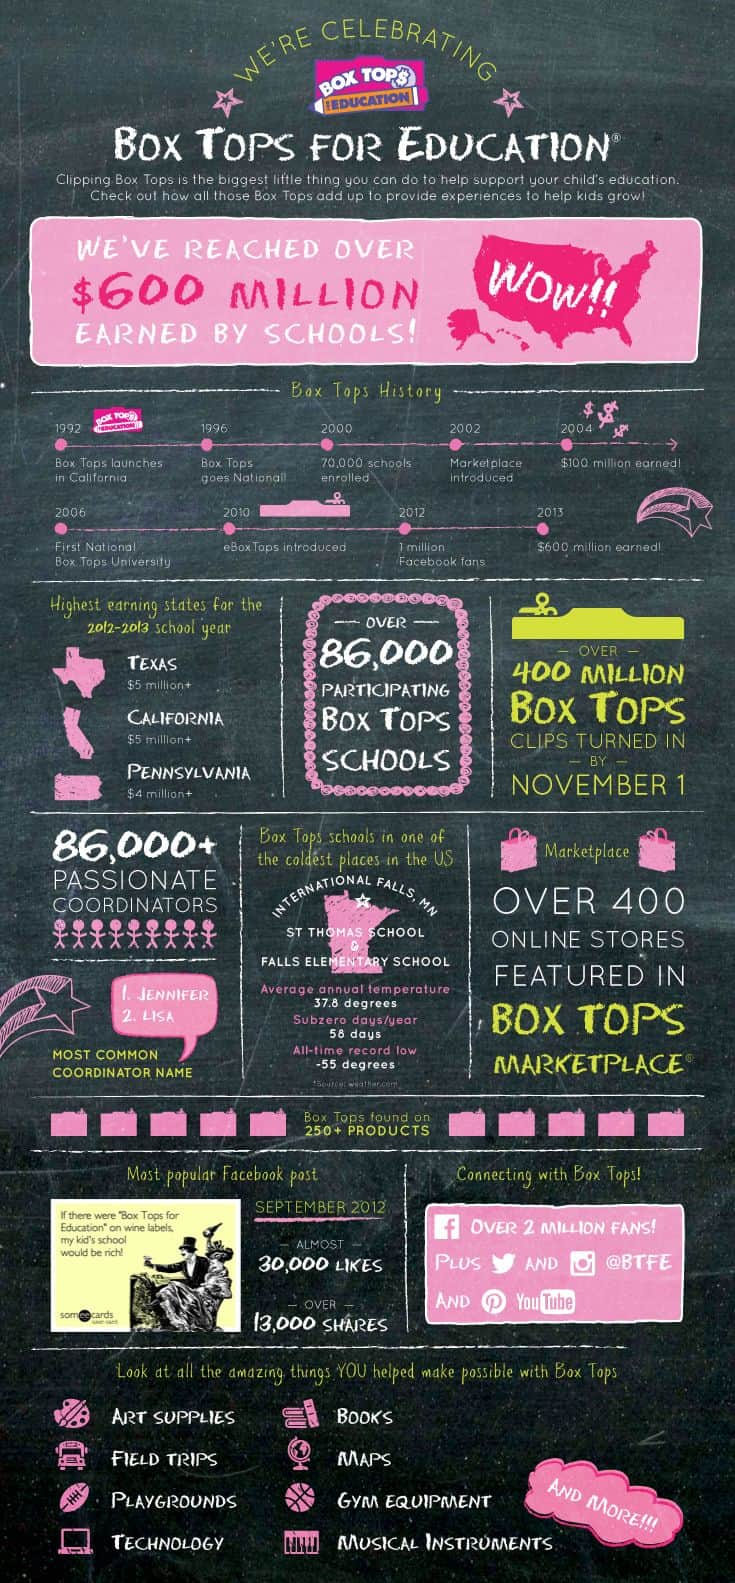 Box Tops for Education provides experiences to help kids grow... and they really add up!